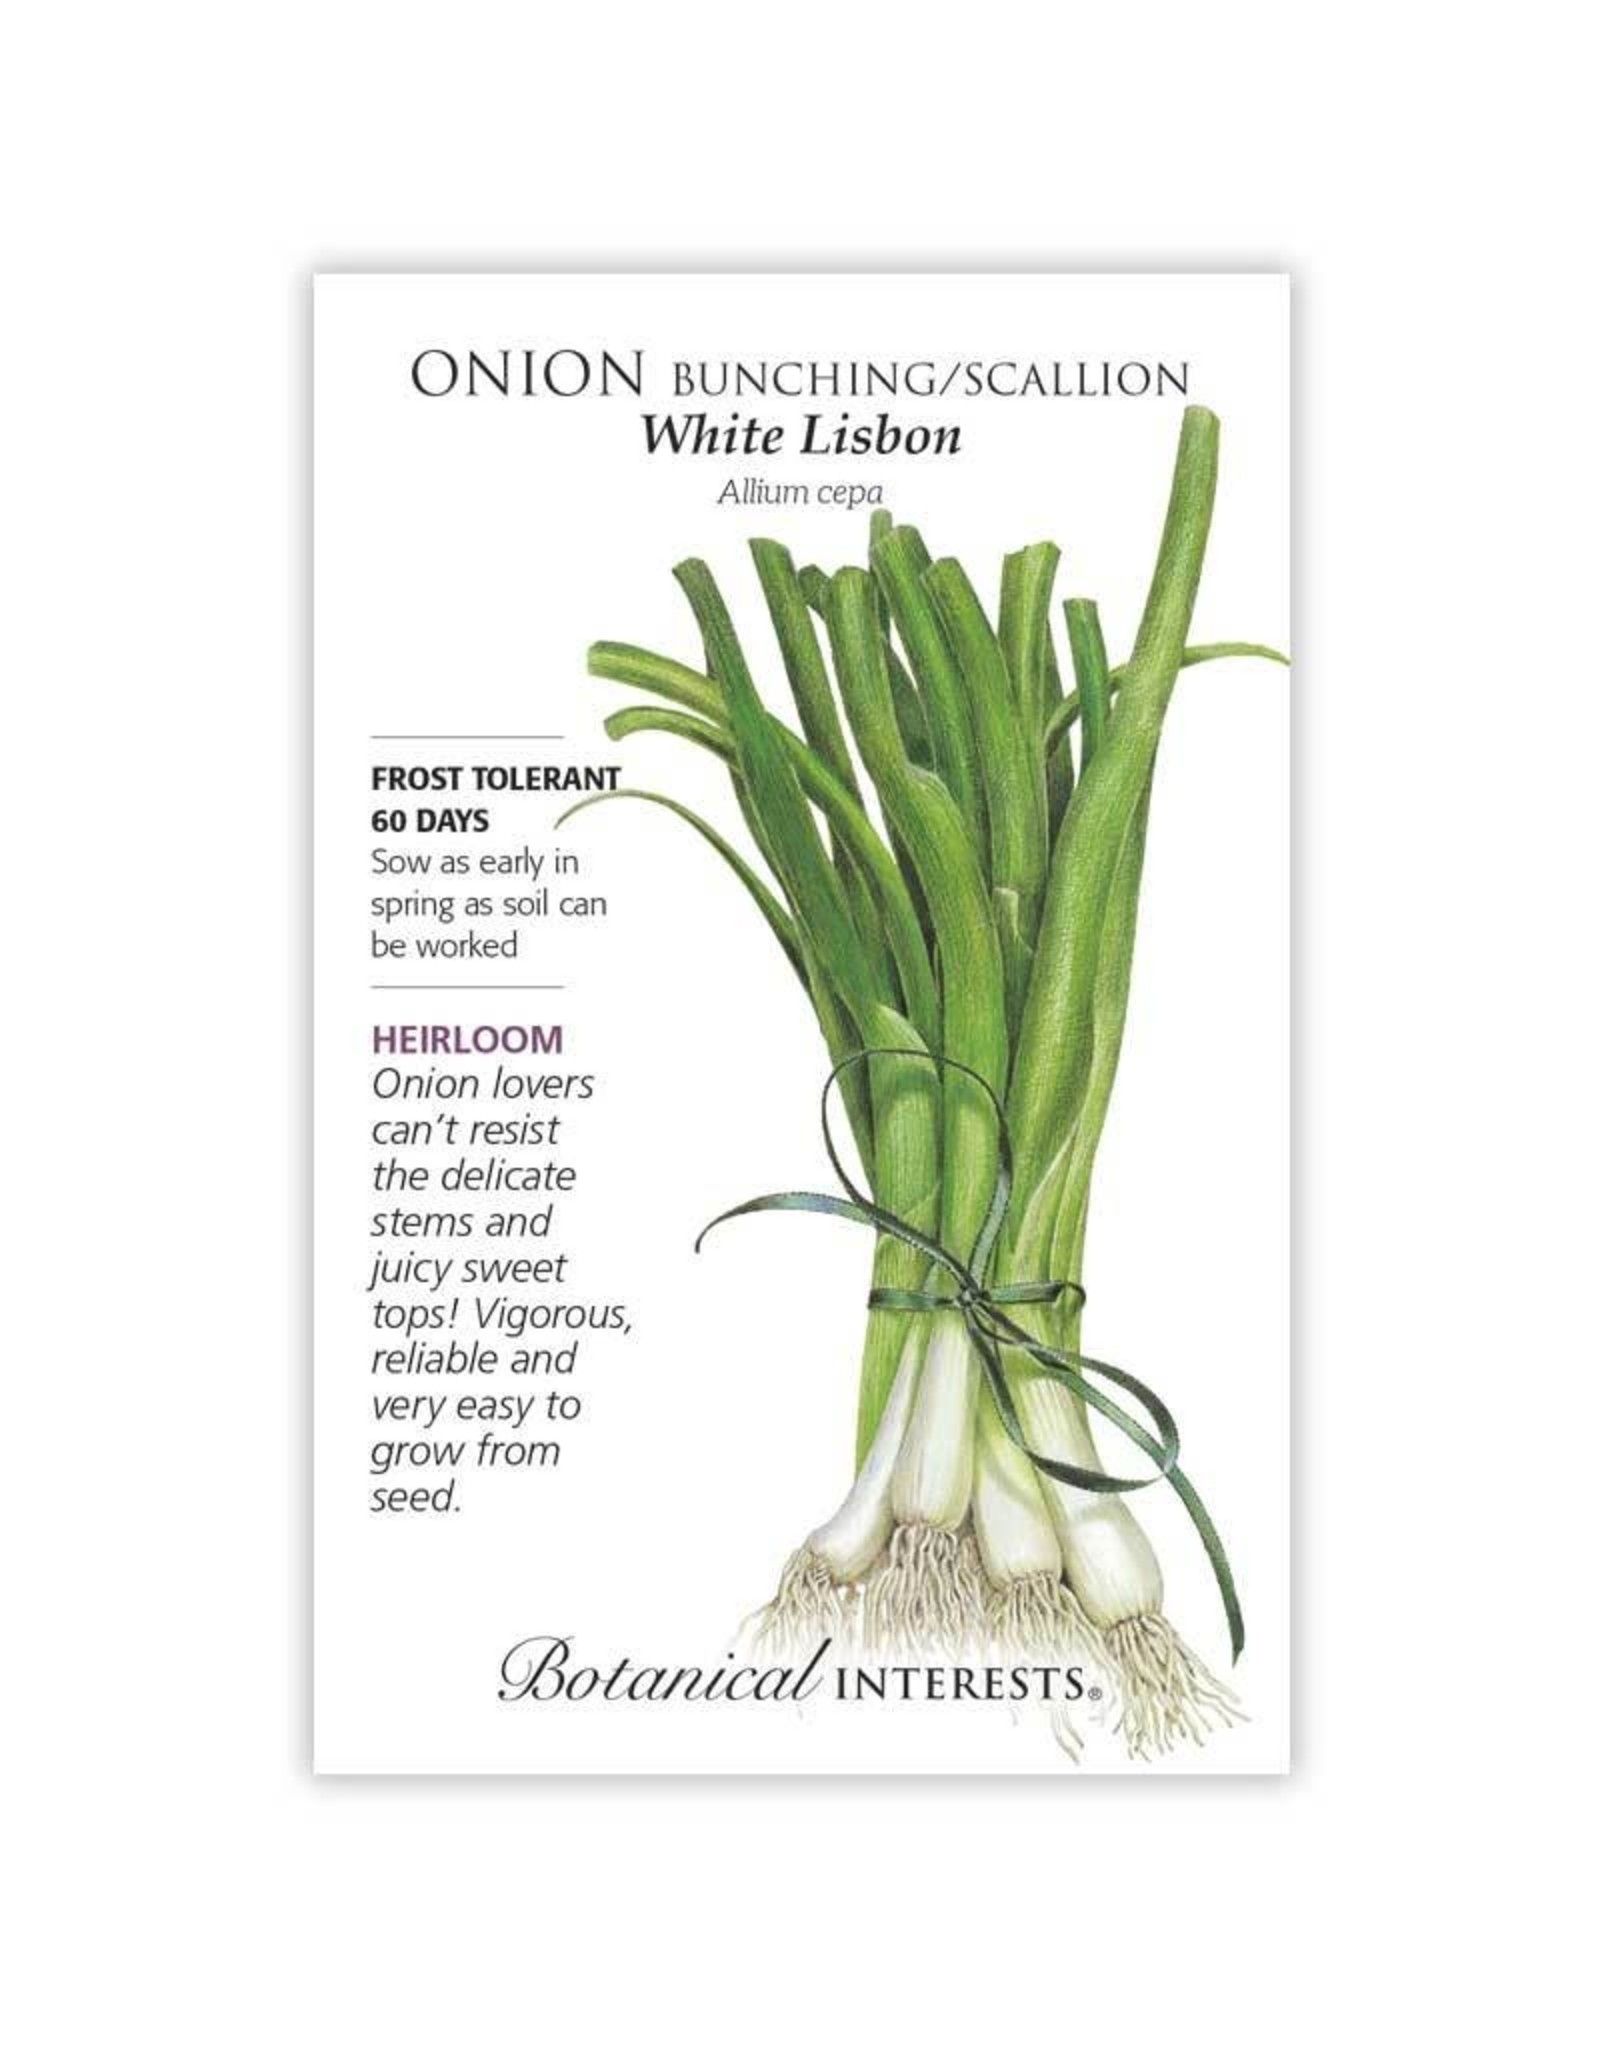 Seeds - Onion Bunching, Scallion, White Lisbon